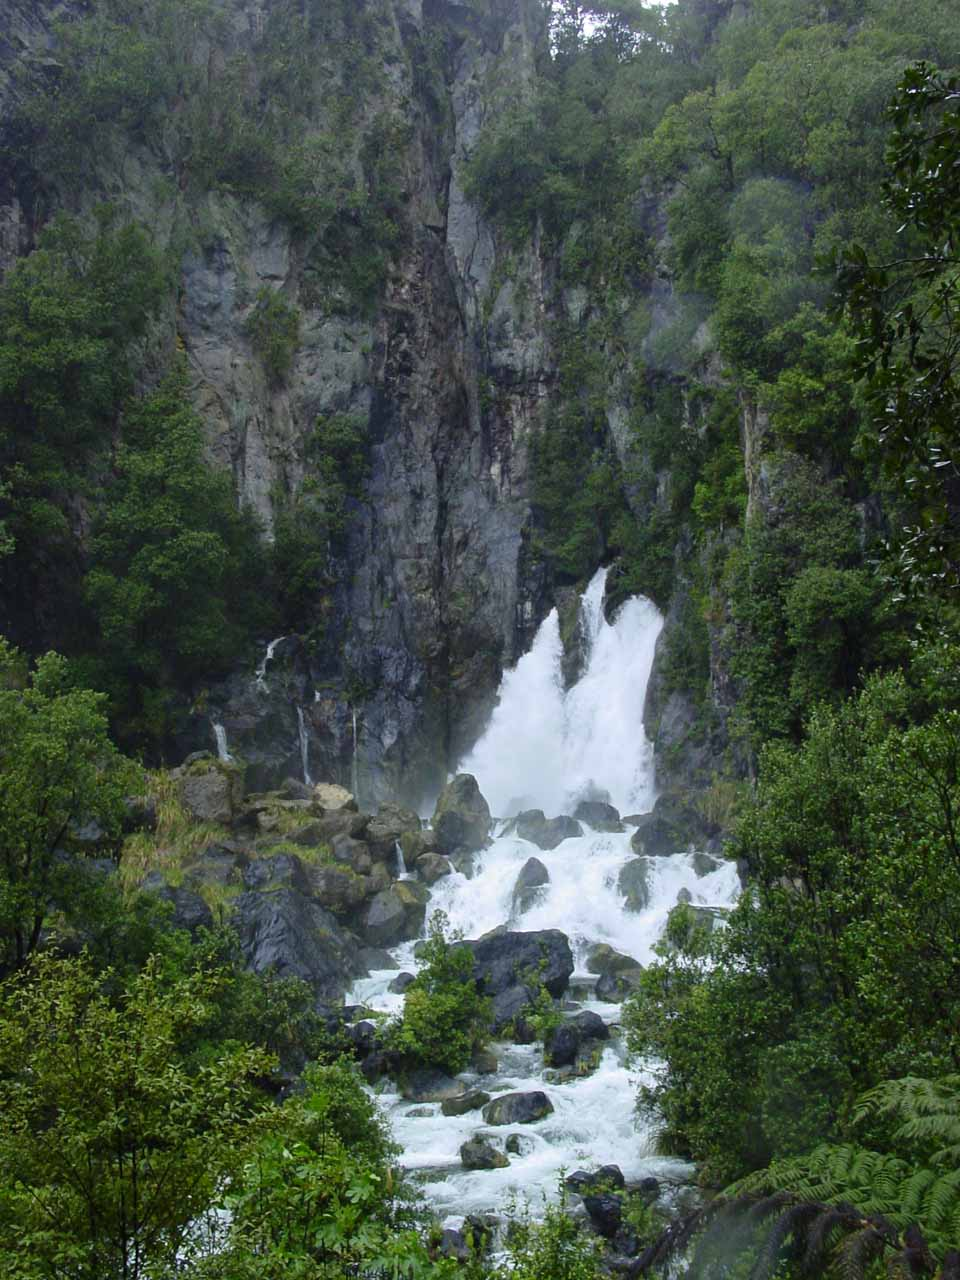 Full context of Tarawera Falls with the high cliffs towering over the gushing waterfall